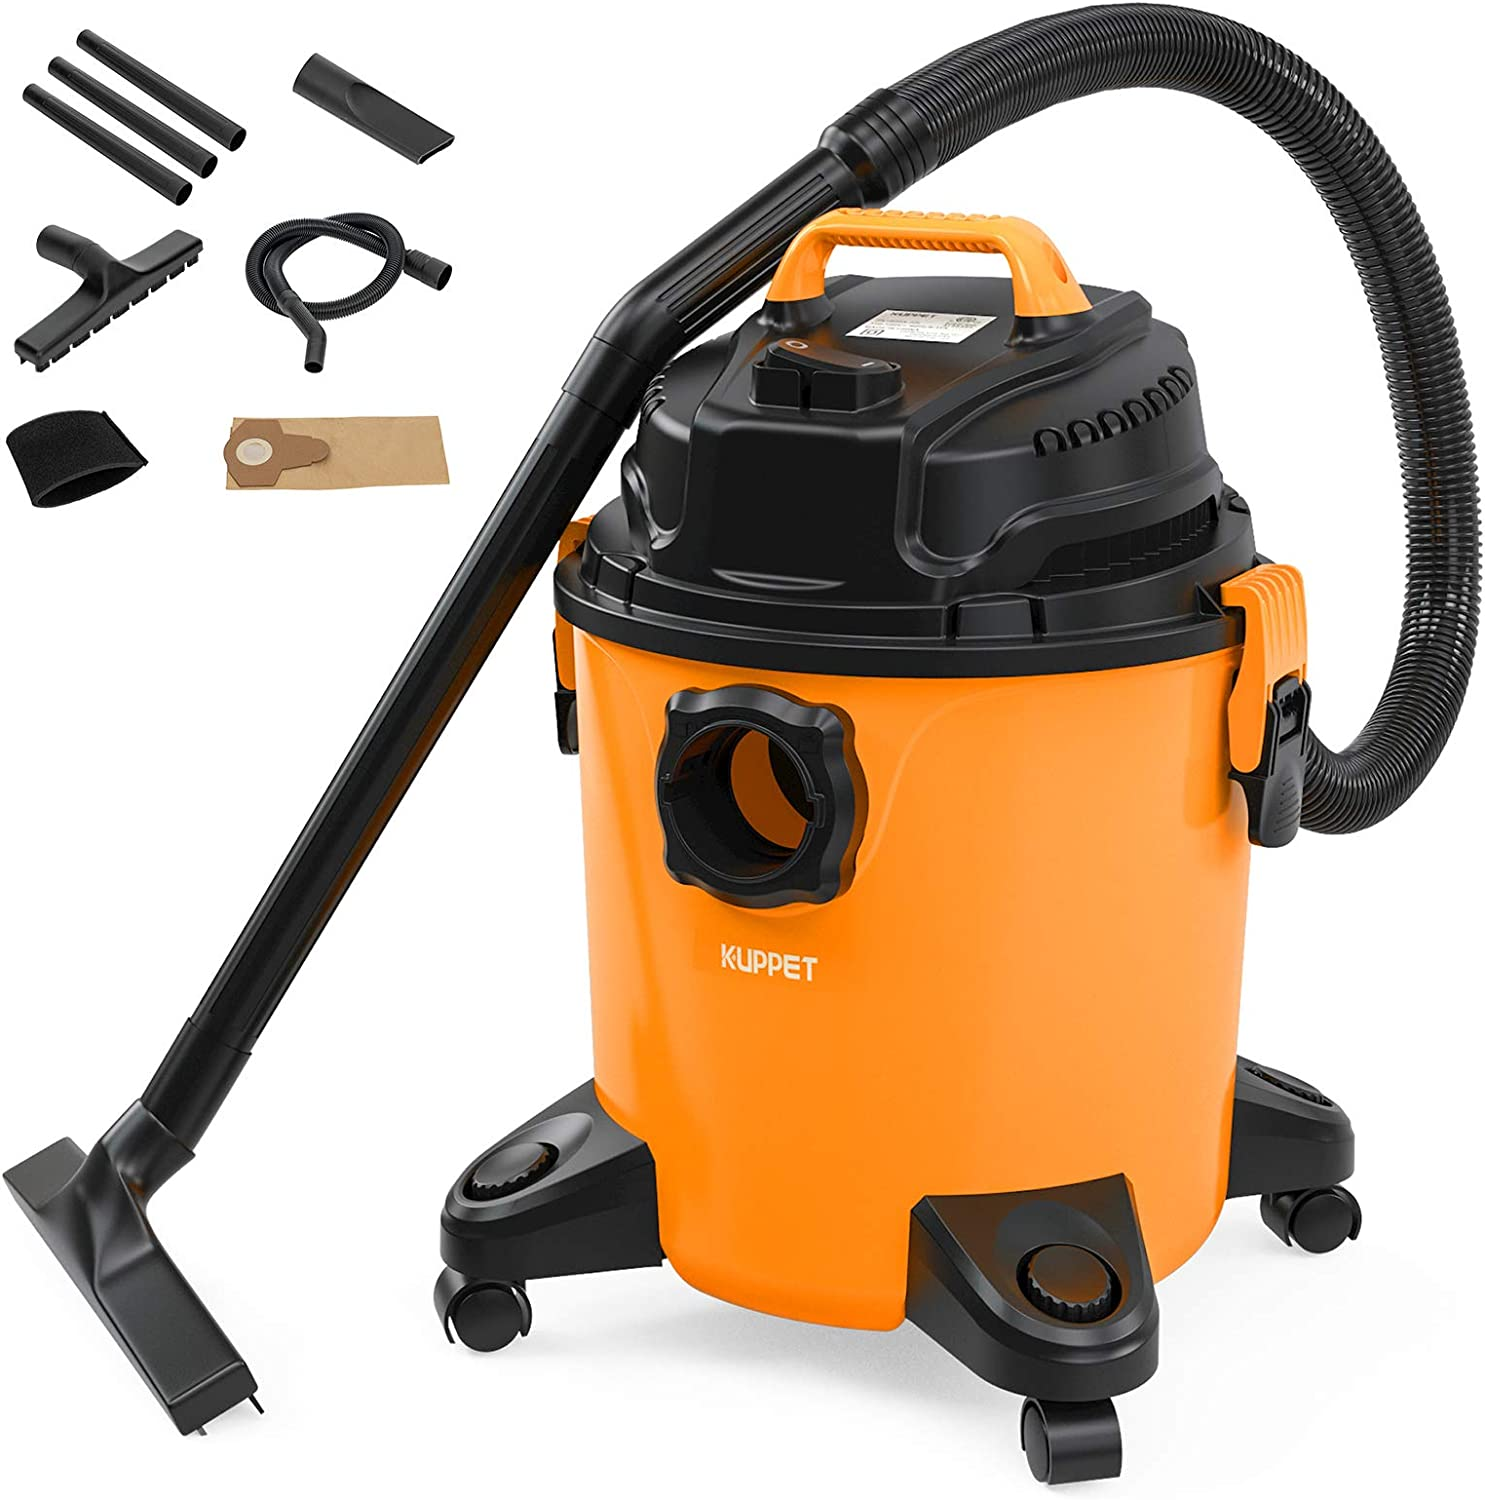 KUPPET 3-in-1 Shop Vac, Wet/Dry Vacuum Cleaner, Shop Vacuum with Attachments, 5 Gallon, 5.5 Peak HP, 16Kpa Powerful Suction, 20L Capacity Orange